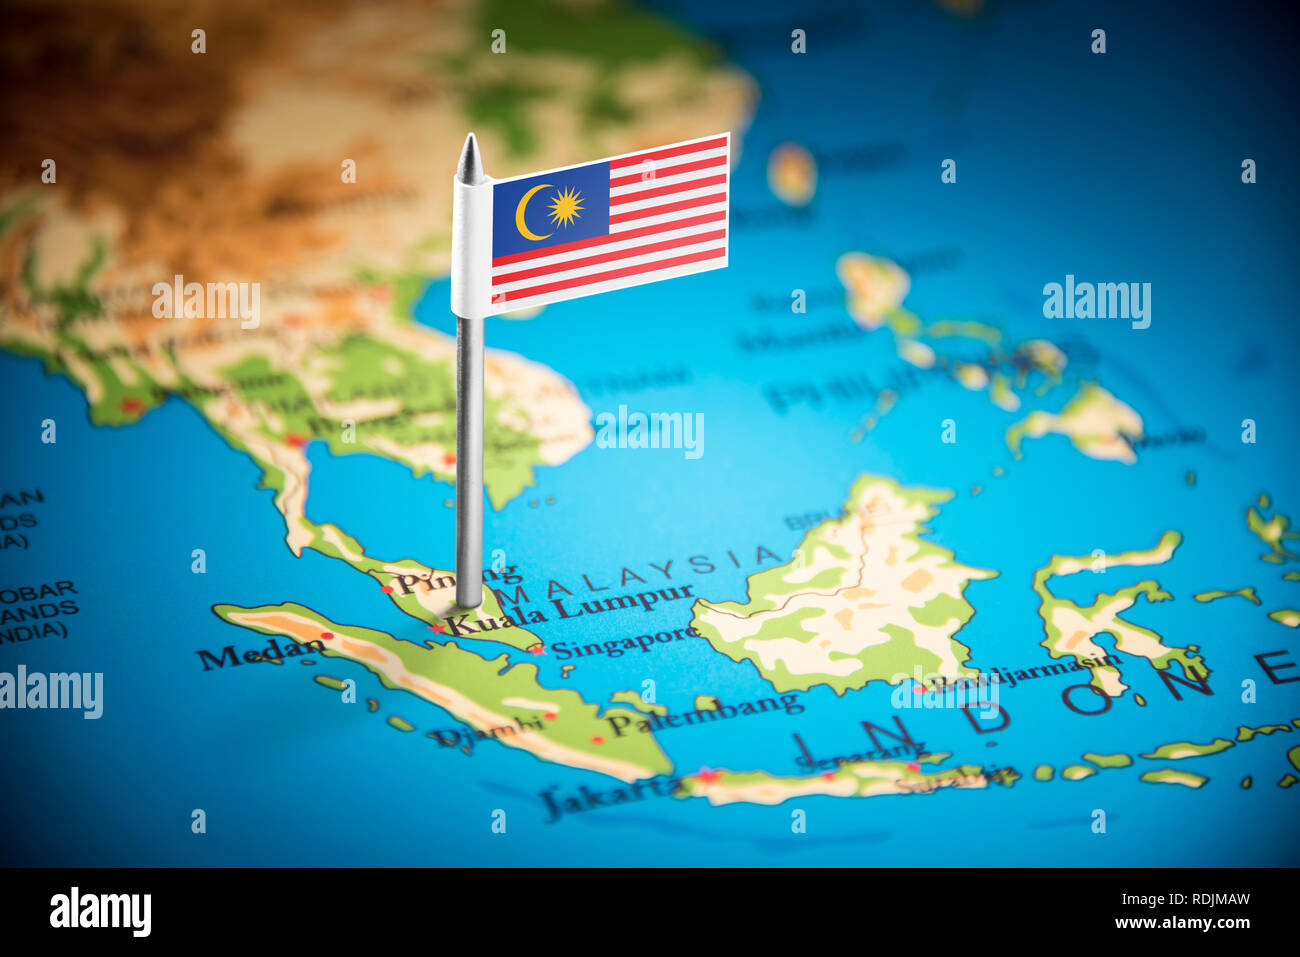 Malaysia marked with a flag on the map Stock Photo ... on myanmar on a map, samoan islands on a map, guangxi on a map, nepal on a map, singapore on a map, the sudan on a map, santa domingo on a map, southern india on a map, waziristan on a map, east timor on a map, heard island on a map, syria on a map, st john island on a map, world map, siam on a map, bangladesh on a map, sri lanka on a map, the seychelles on a map, kabul river on a map, dr congo on a map,